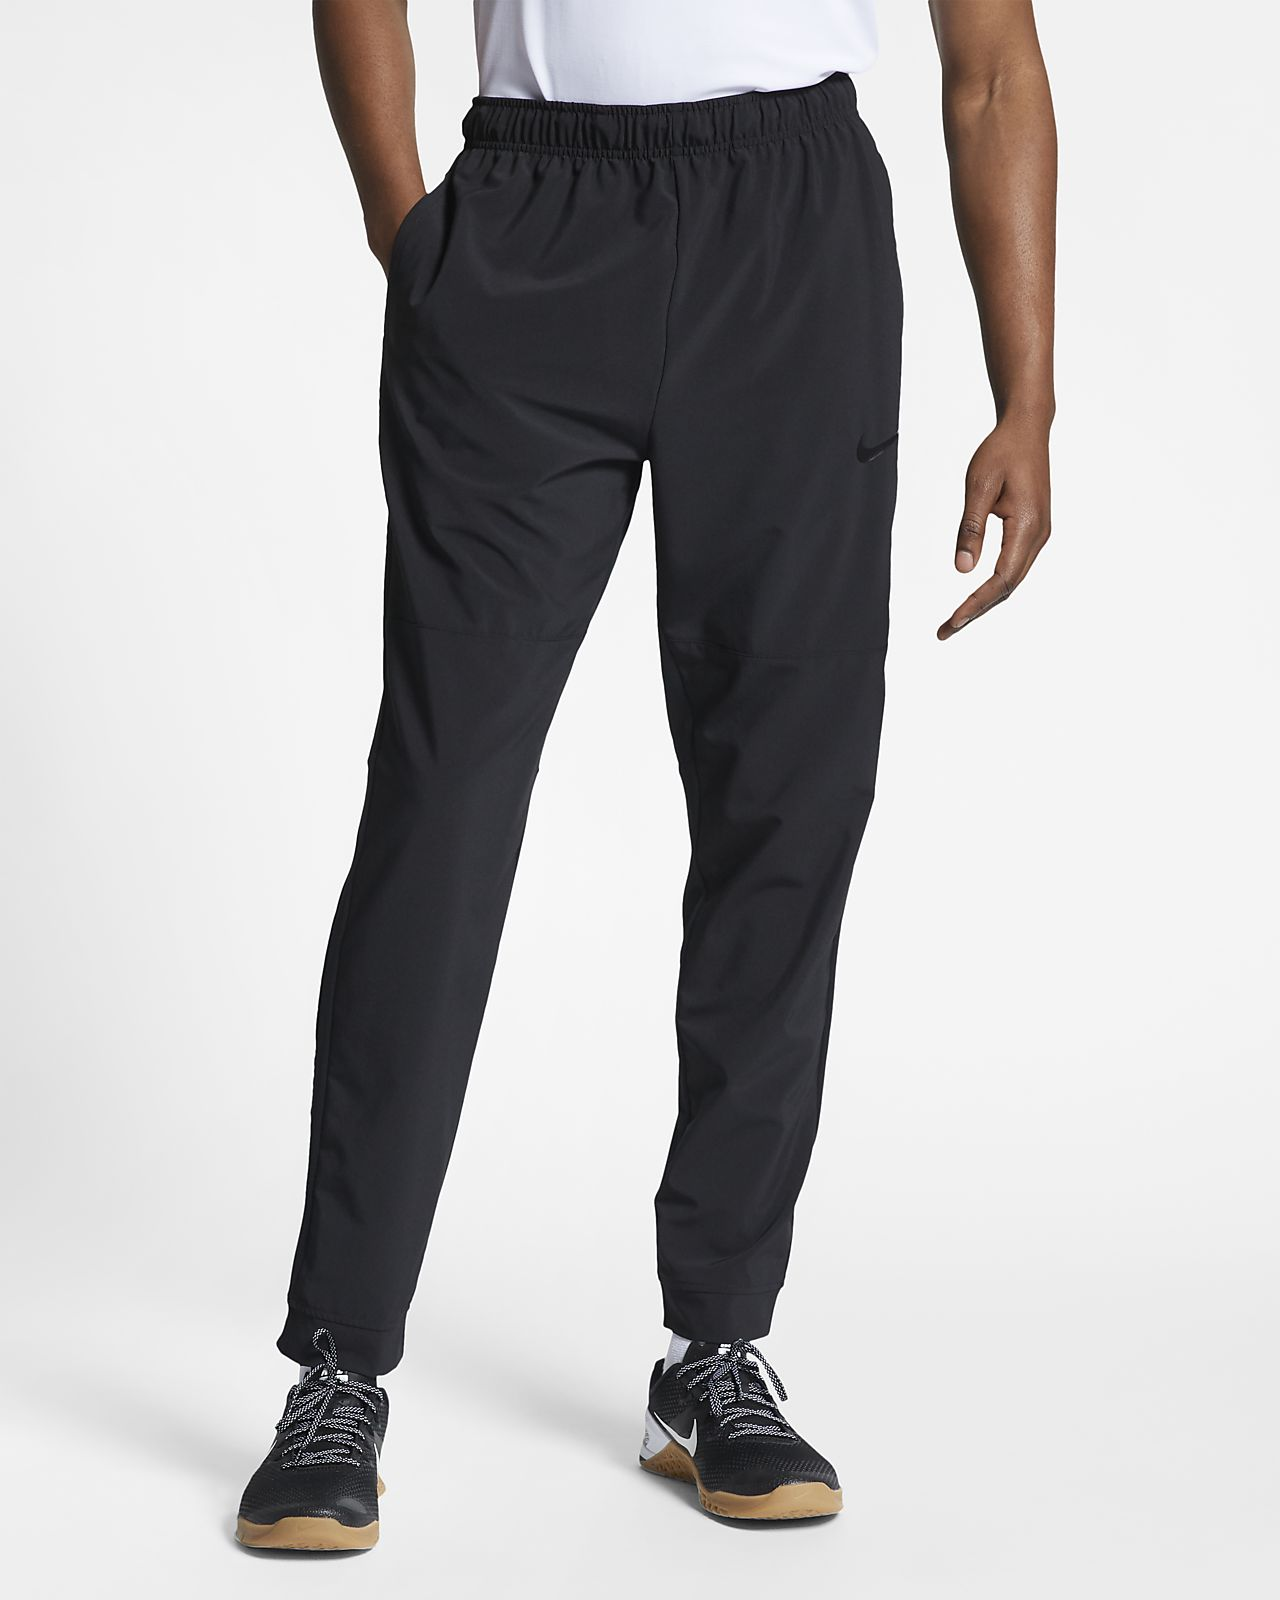 Nike Dri-FIT Trainingsbroek voor heren